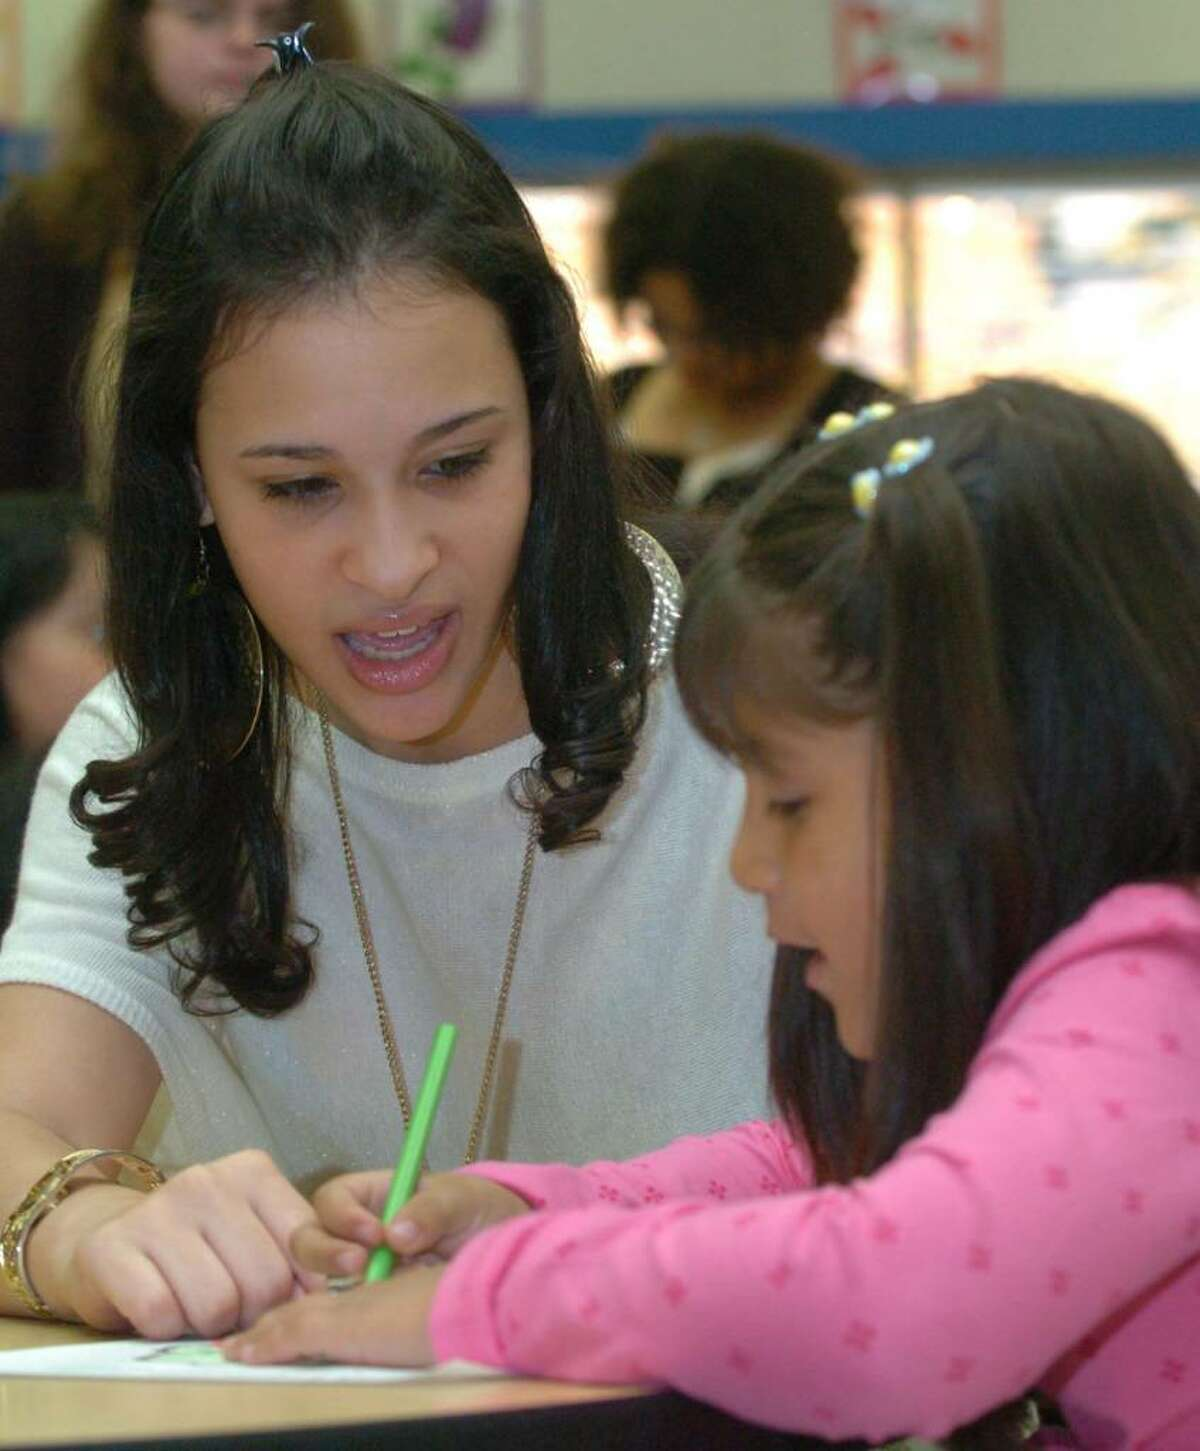 From left, Crisannys Fernandez, 15 works with Ashley Arias of King St Primary school durning a lesson at Danbury High School, Thursday, Oct. 29, 2009.